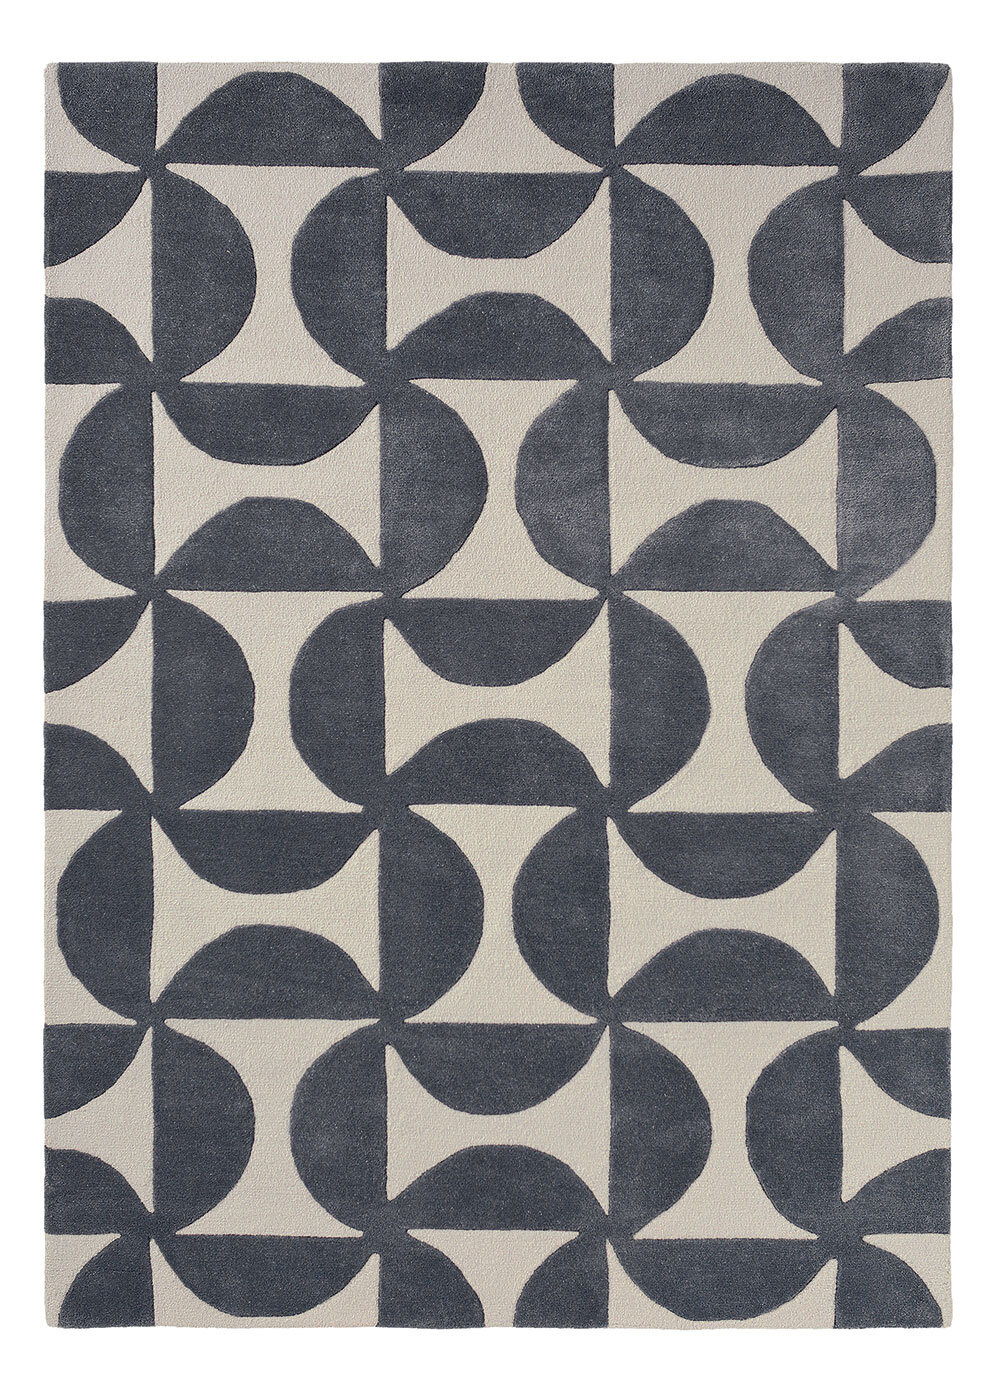 Forma Rug - Liquorice - by Scion